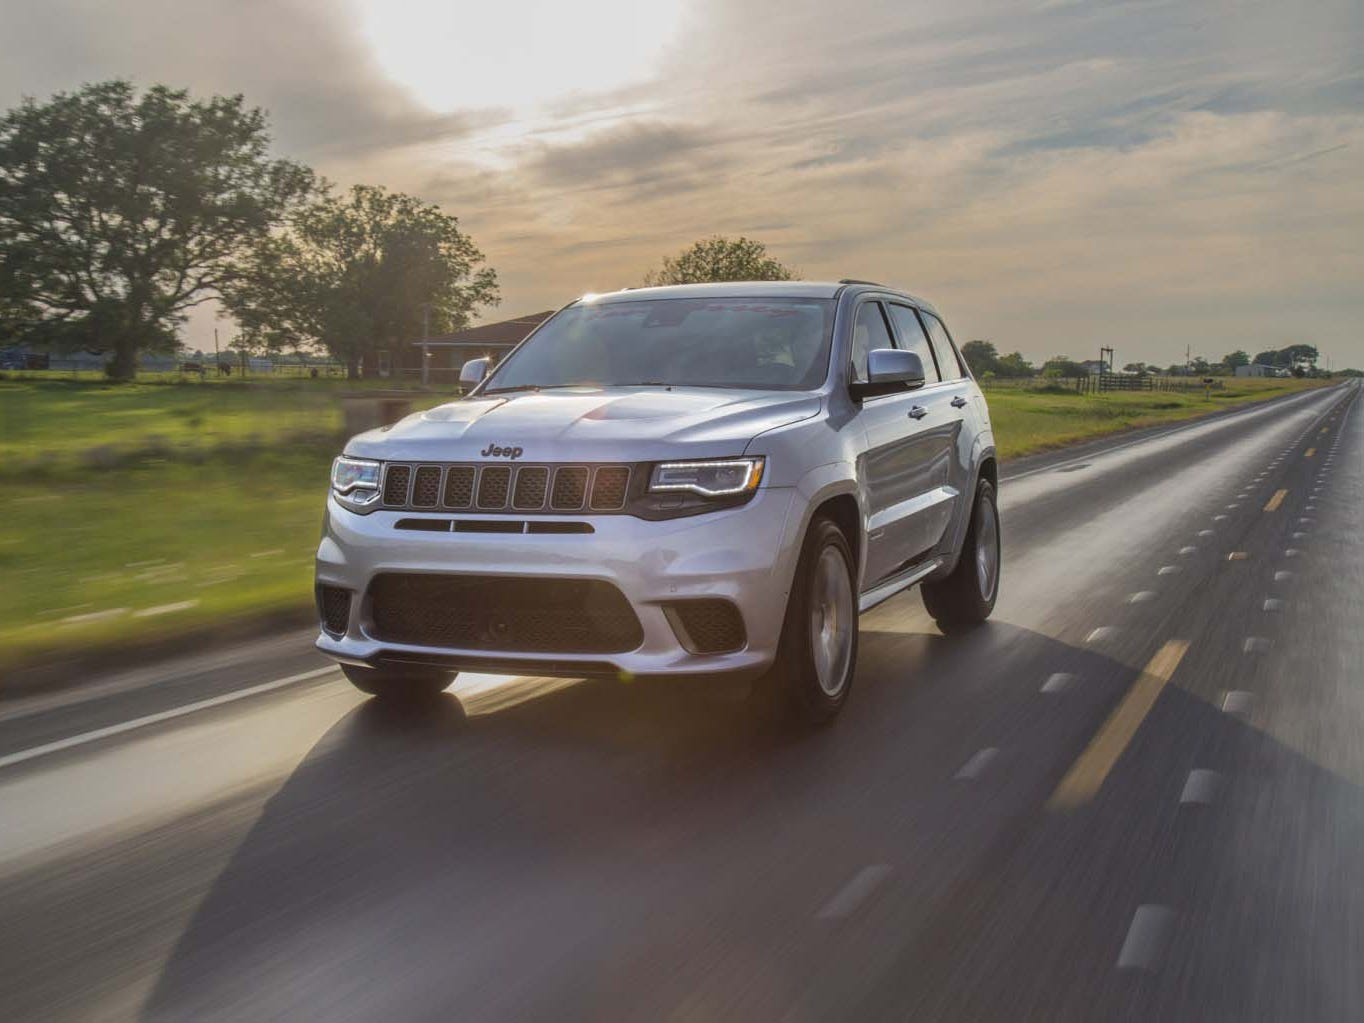 The three-row 2019 High-Output Chevy Tahoe/Suburban follows the two-row, Hennessey Jeep Grand Cherokee Trackhawk (picture) as after-market SUVs with more than 1,000 hp.